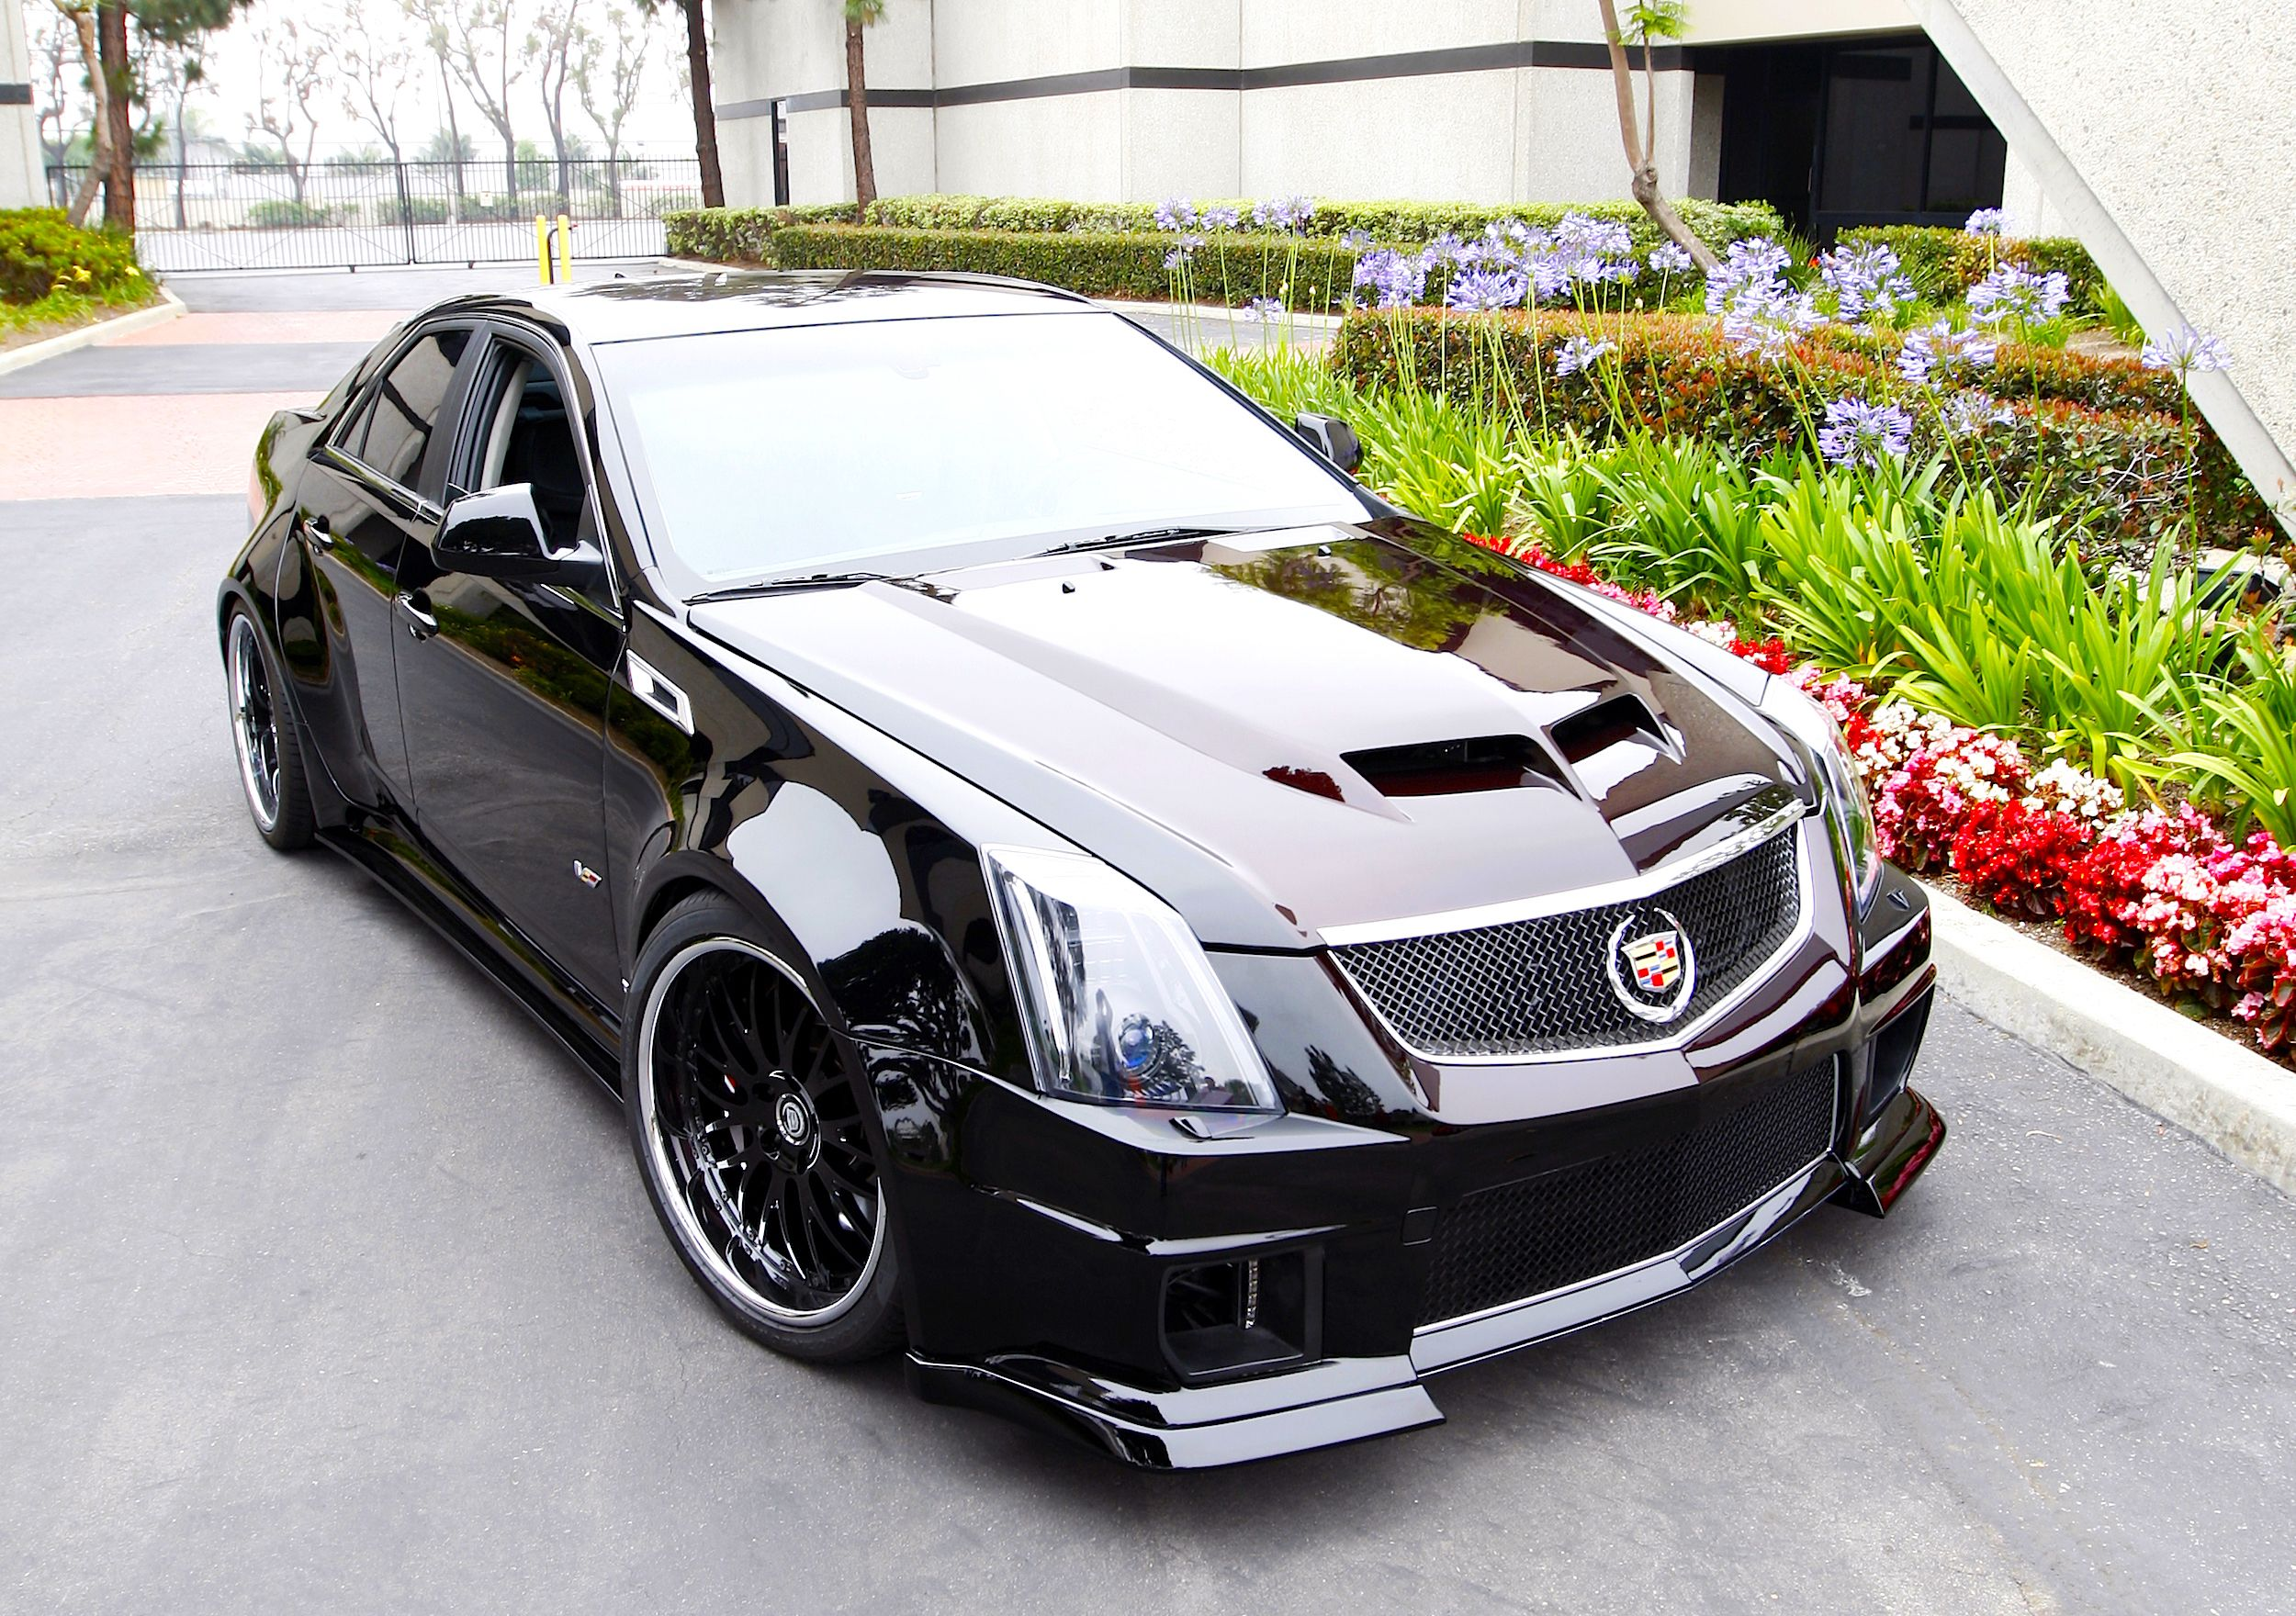 2012 cadillac cts cts coupe v body kit one of kind must go look nice 2012 cadillac cts cts coupe v body kit one of kind must go look nice sport cars pinterest cadillac cts cadillac and wheels fandeluxe Images